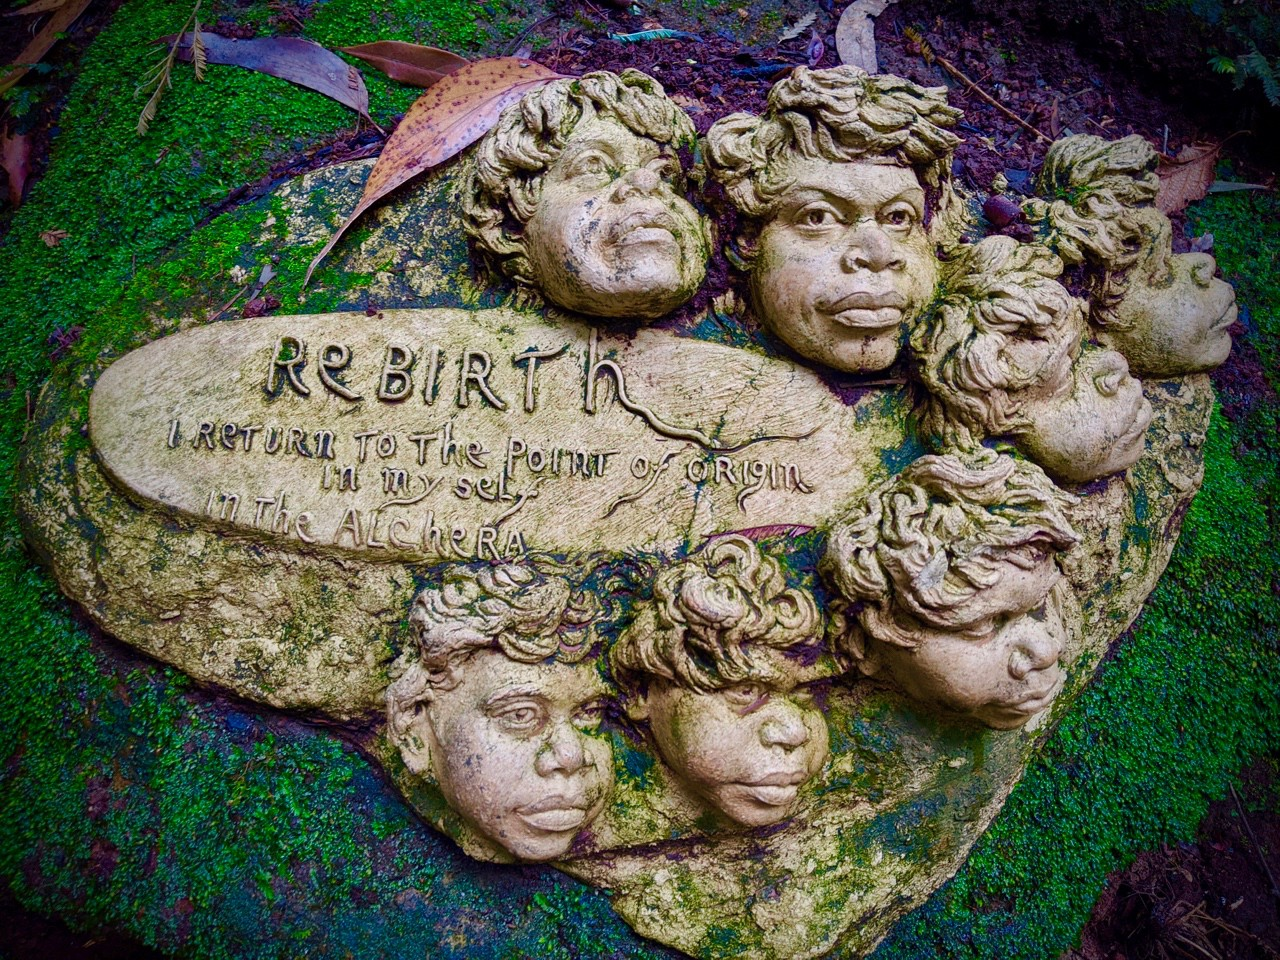 Indigenous Australian faces sculpture on a rock, with a plaque reading: Rebirth, I return to the point of origin in myself.